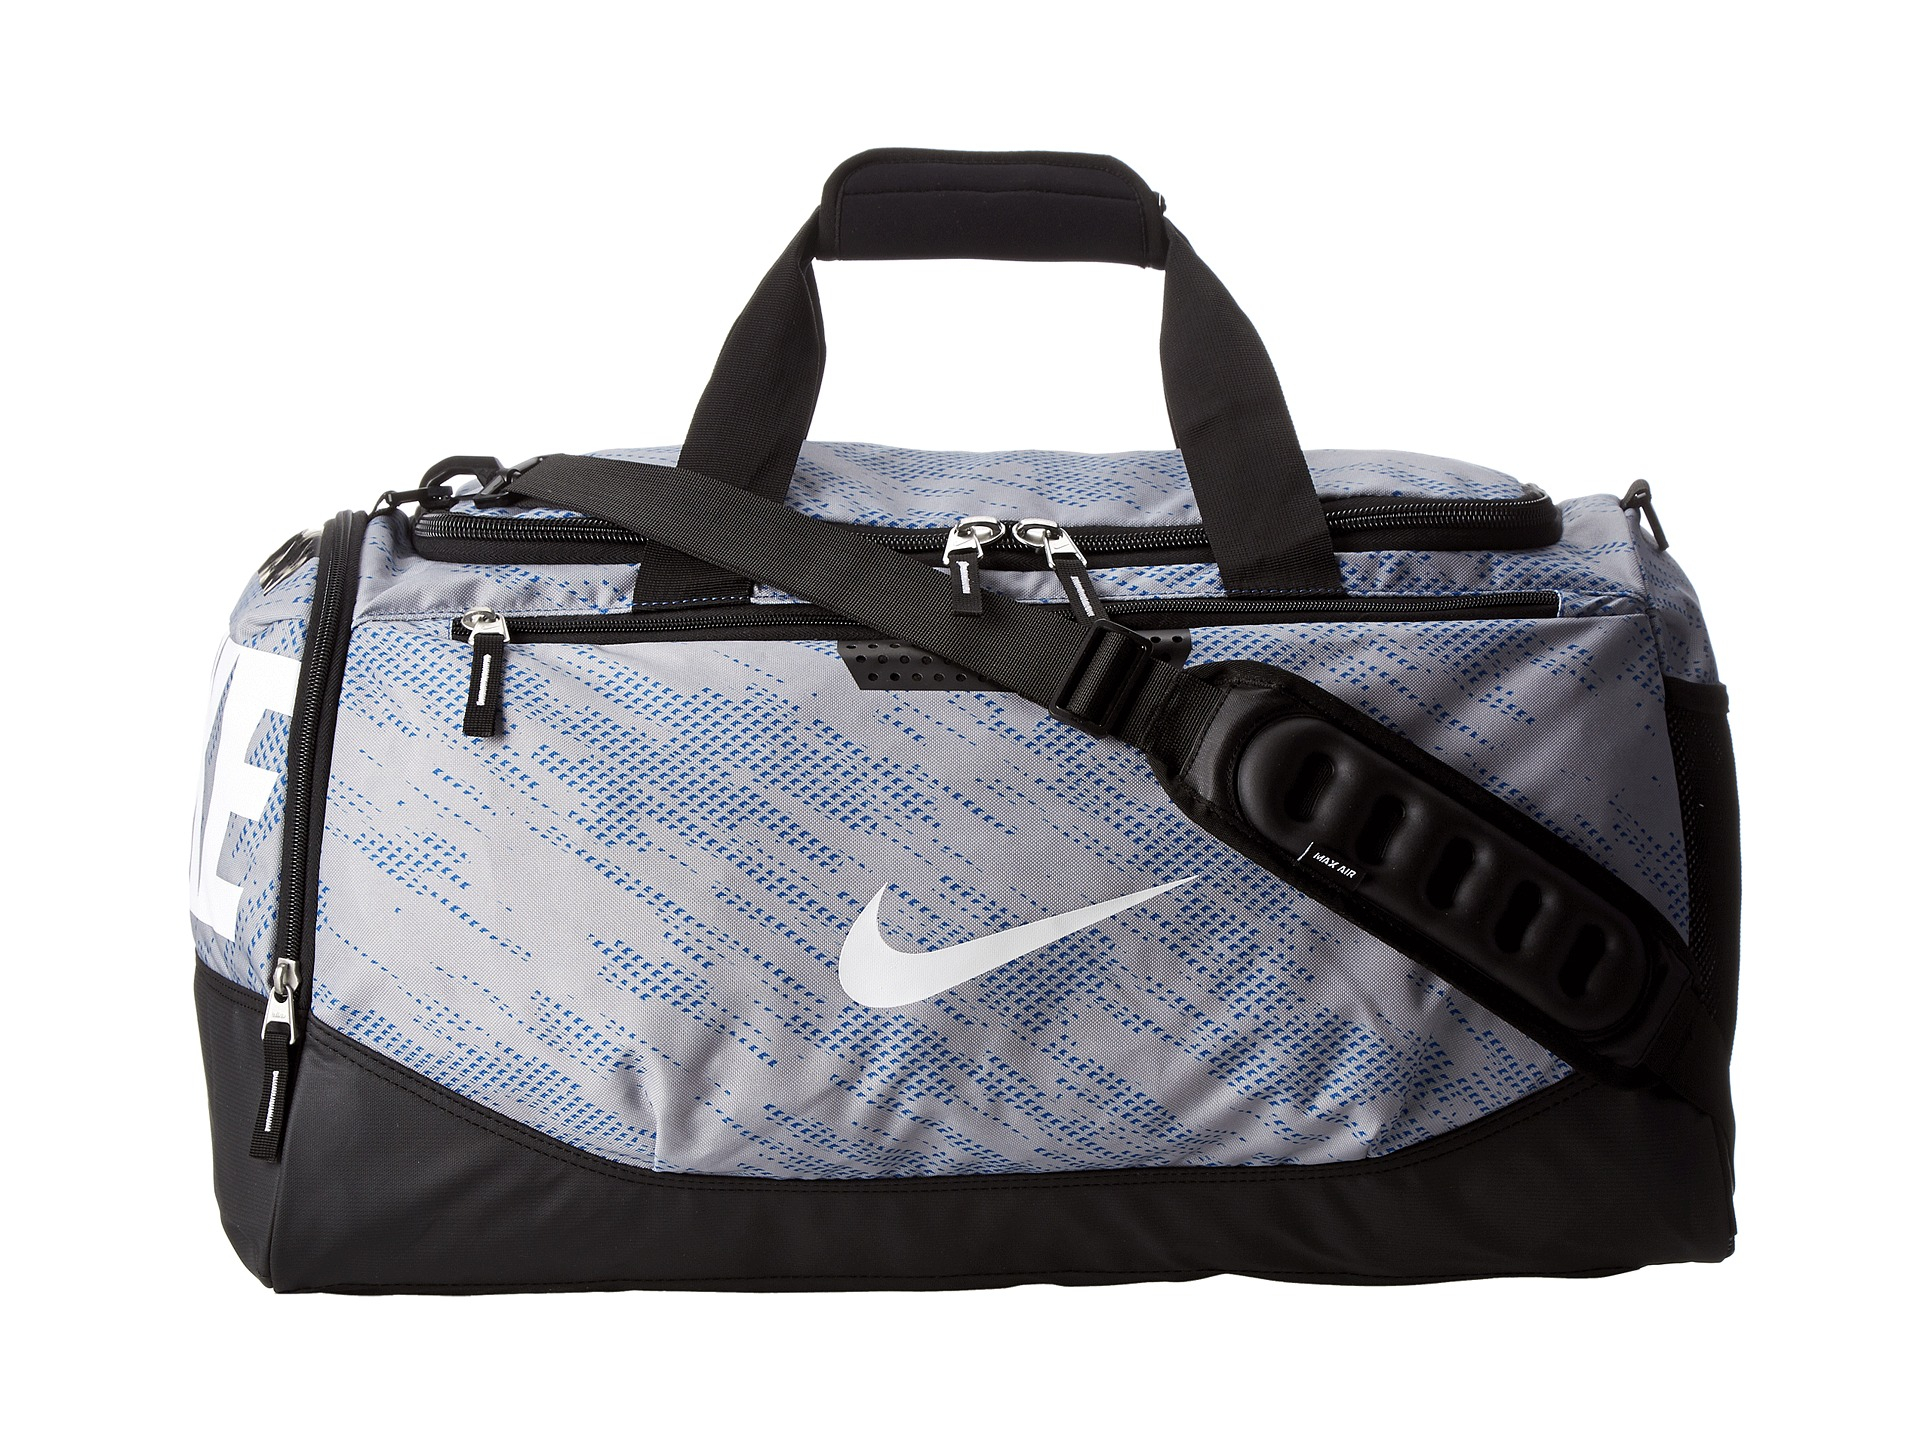 89a4e9c876 Lyst - Nike Team Training Max Air Medium Duffel Graphic in Blue